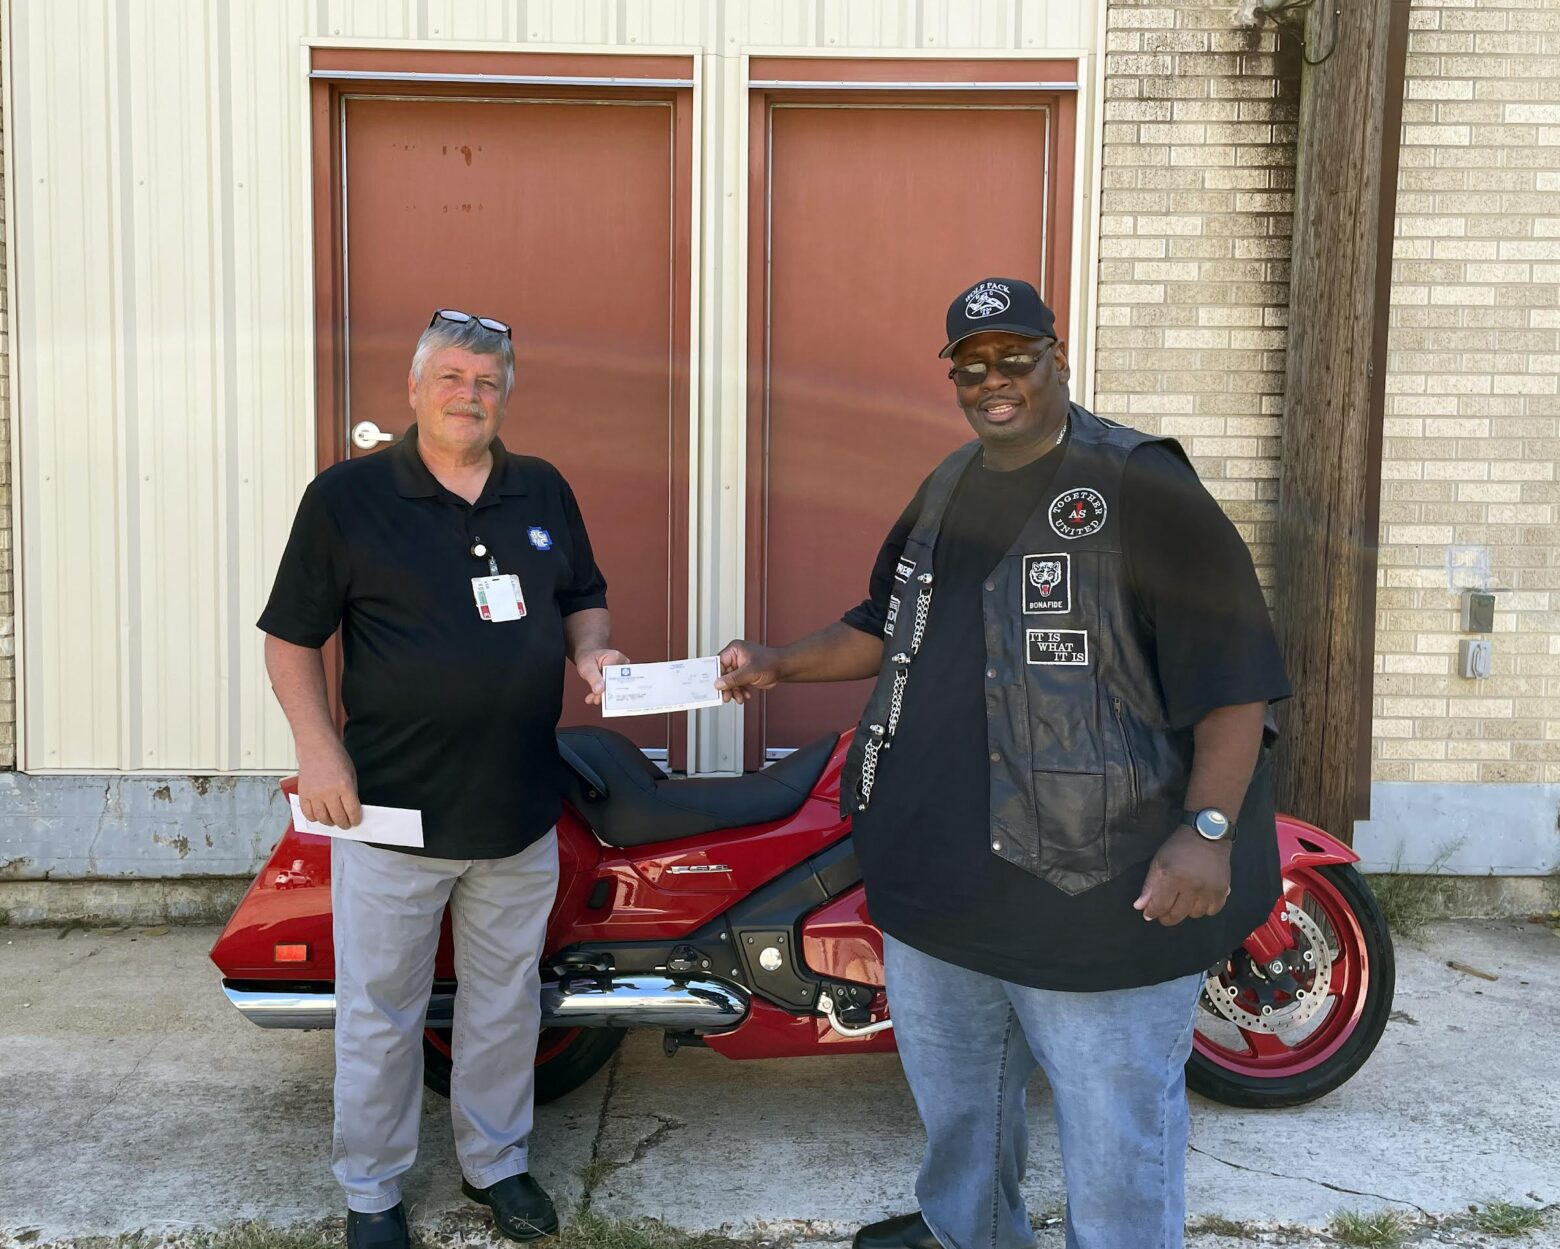 BCMC donates to Wolf Pack MC for school supplies for children in need